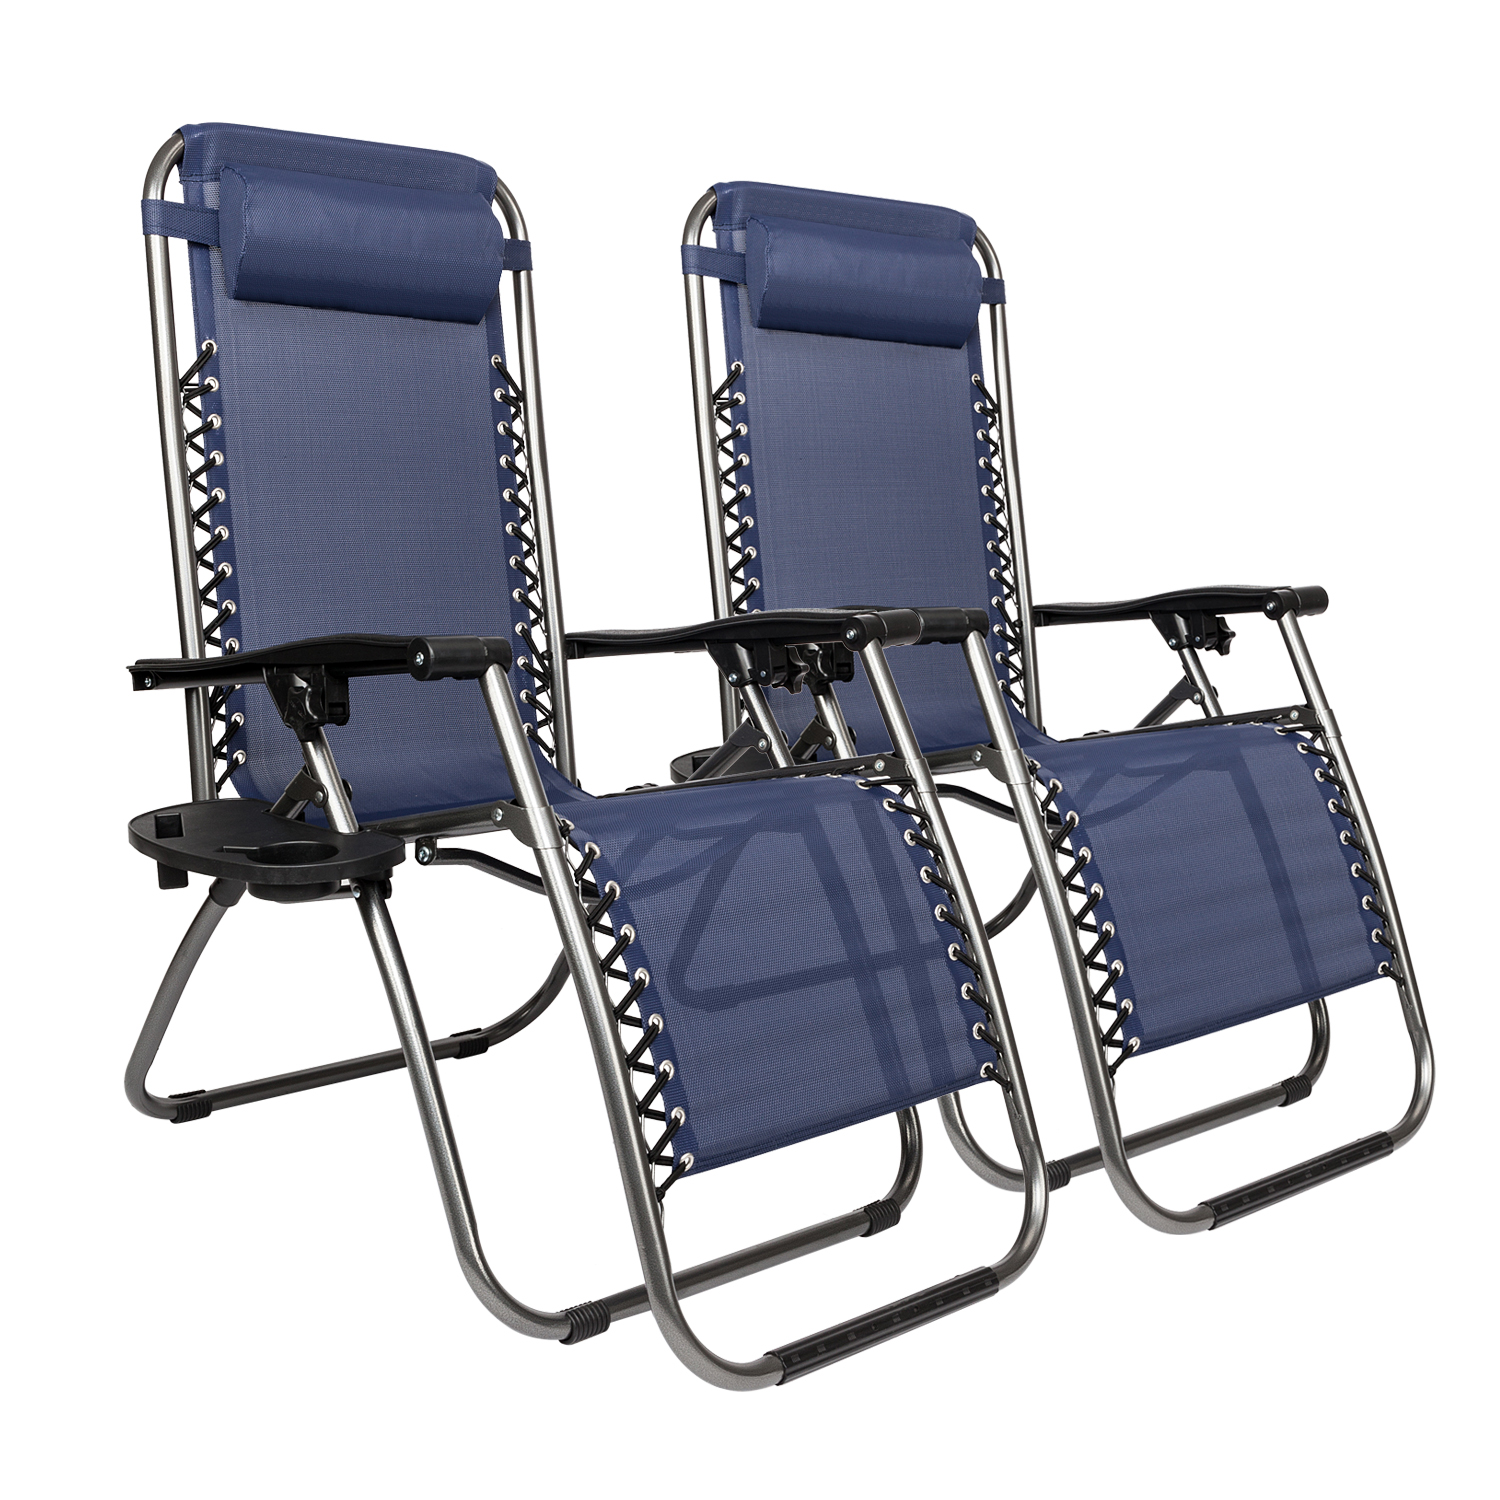 Folding Lounge Chair Details About Set Of 2 Zero Gravity Chairs Folding Lounge Patio Outdoor Recliner Beach Chair